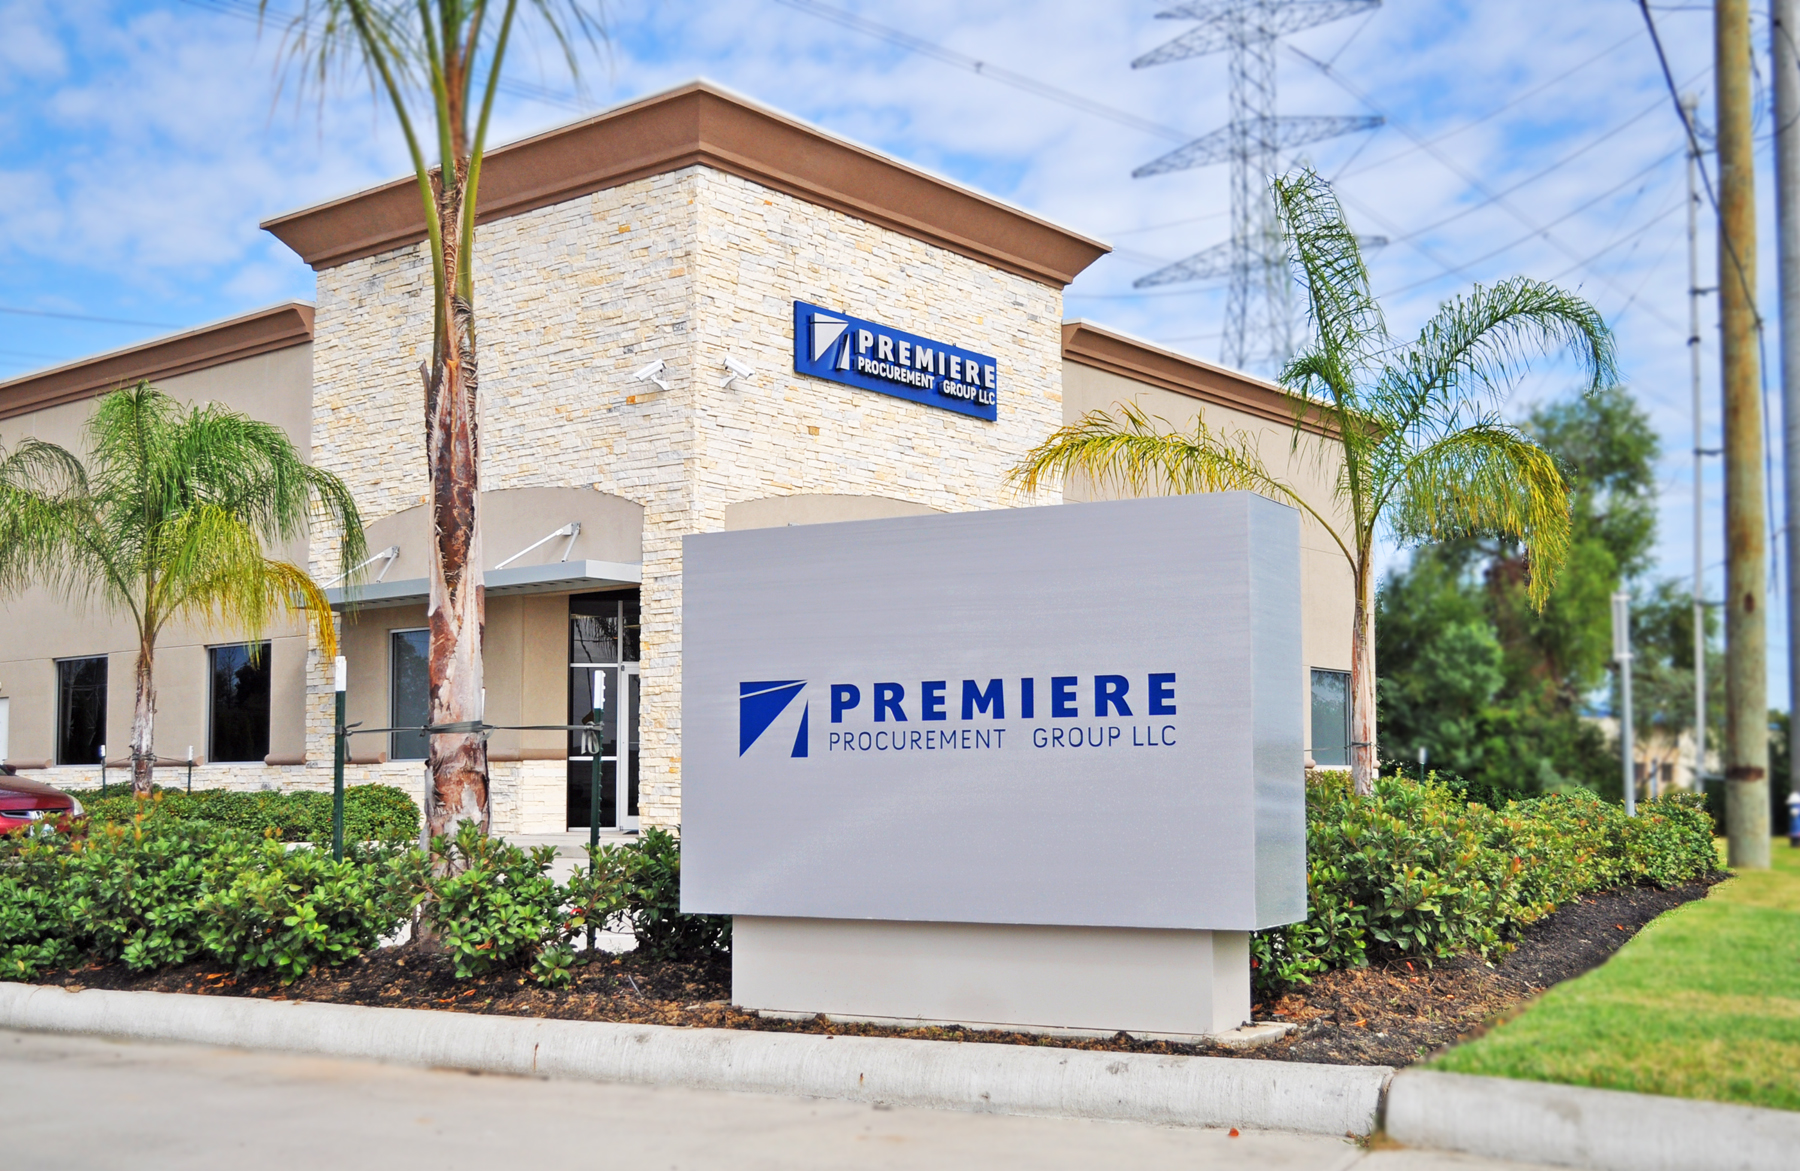 Monument Sign in brushed aluminum for Premier Procurement Group (a division of Tradequip Services). In the background, you can also see a pan sign with brushed aluminum LED lit channel letters